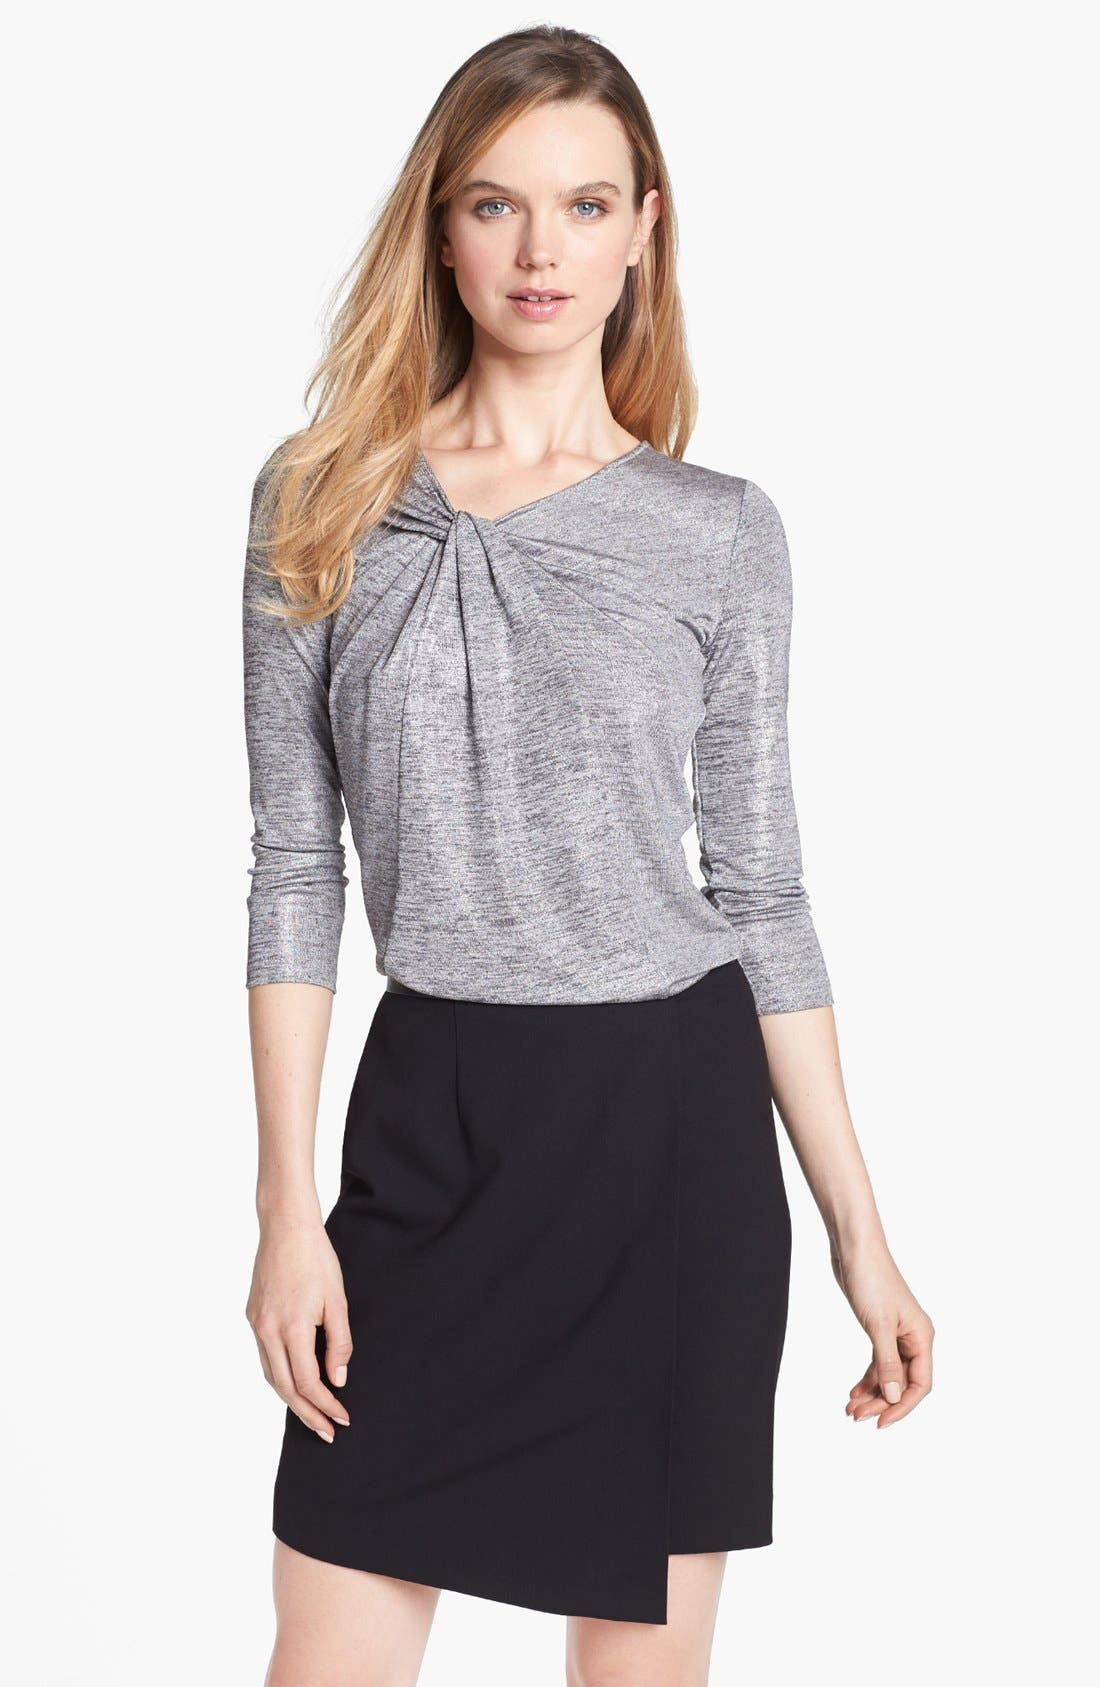 Alternate Image 1 Selected - Vince Camuto Twist Neck Top (Petite) (Online Exclusive)